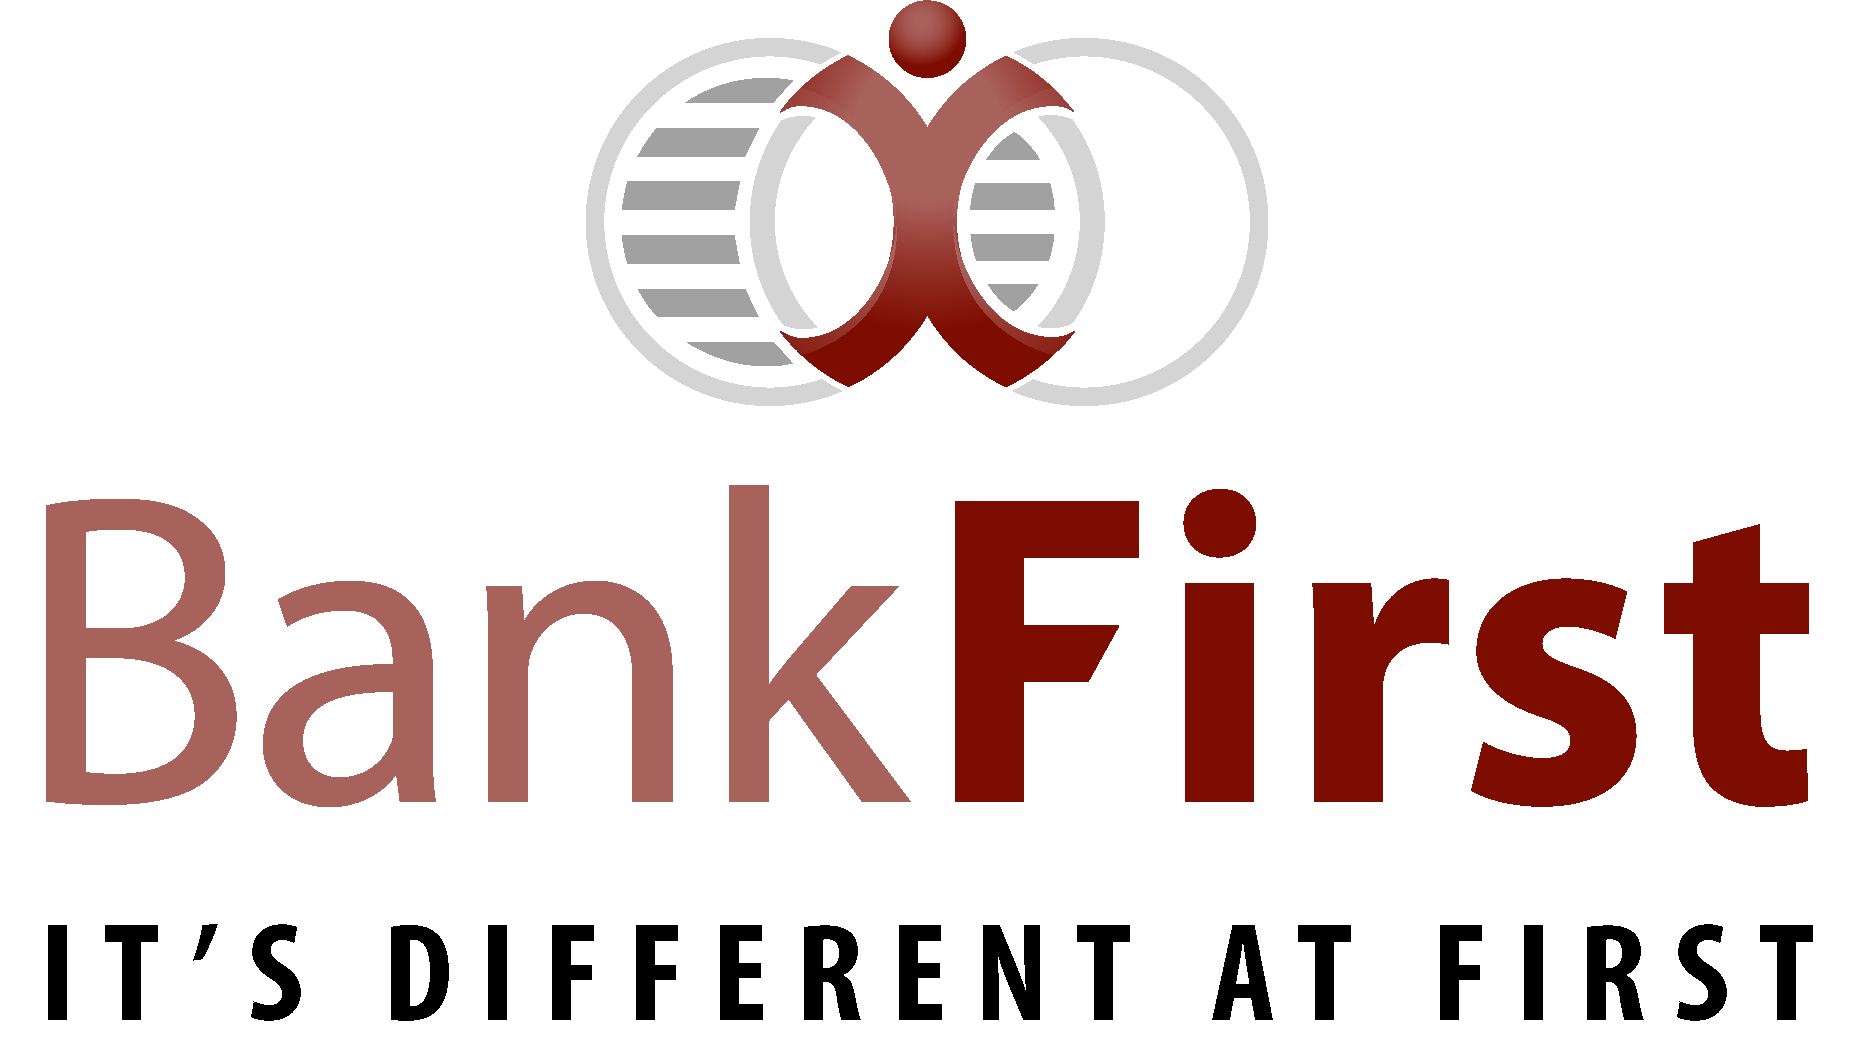 Bank First ItsDifferentAtFirst